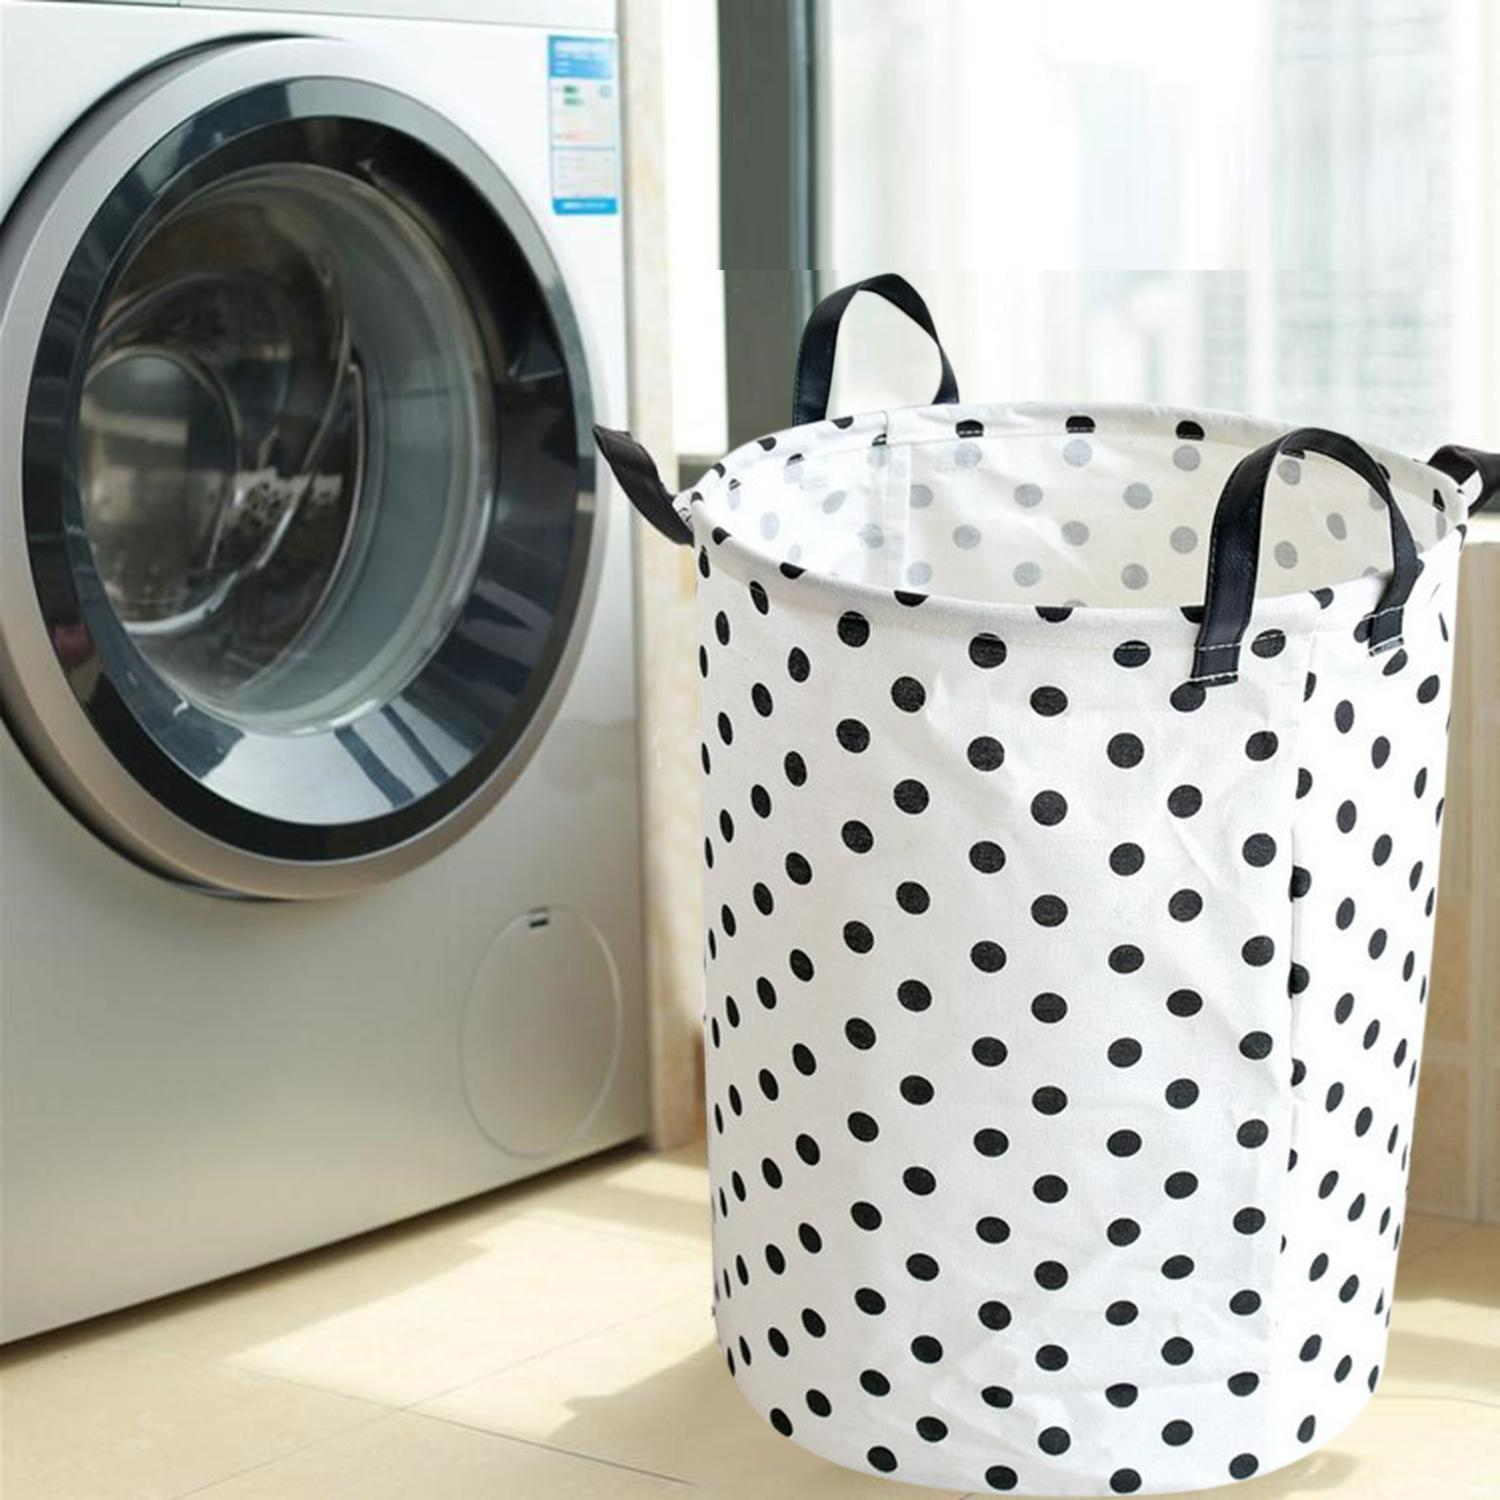 Foldable Waterproof Laundry Basket Toys Storage White Black Indoor Dot Bucket 300g